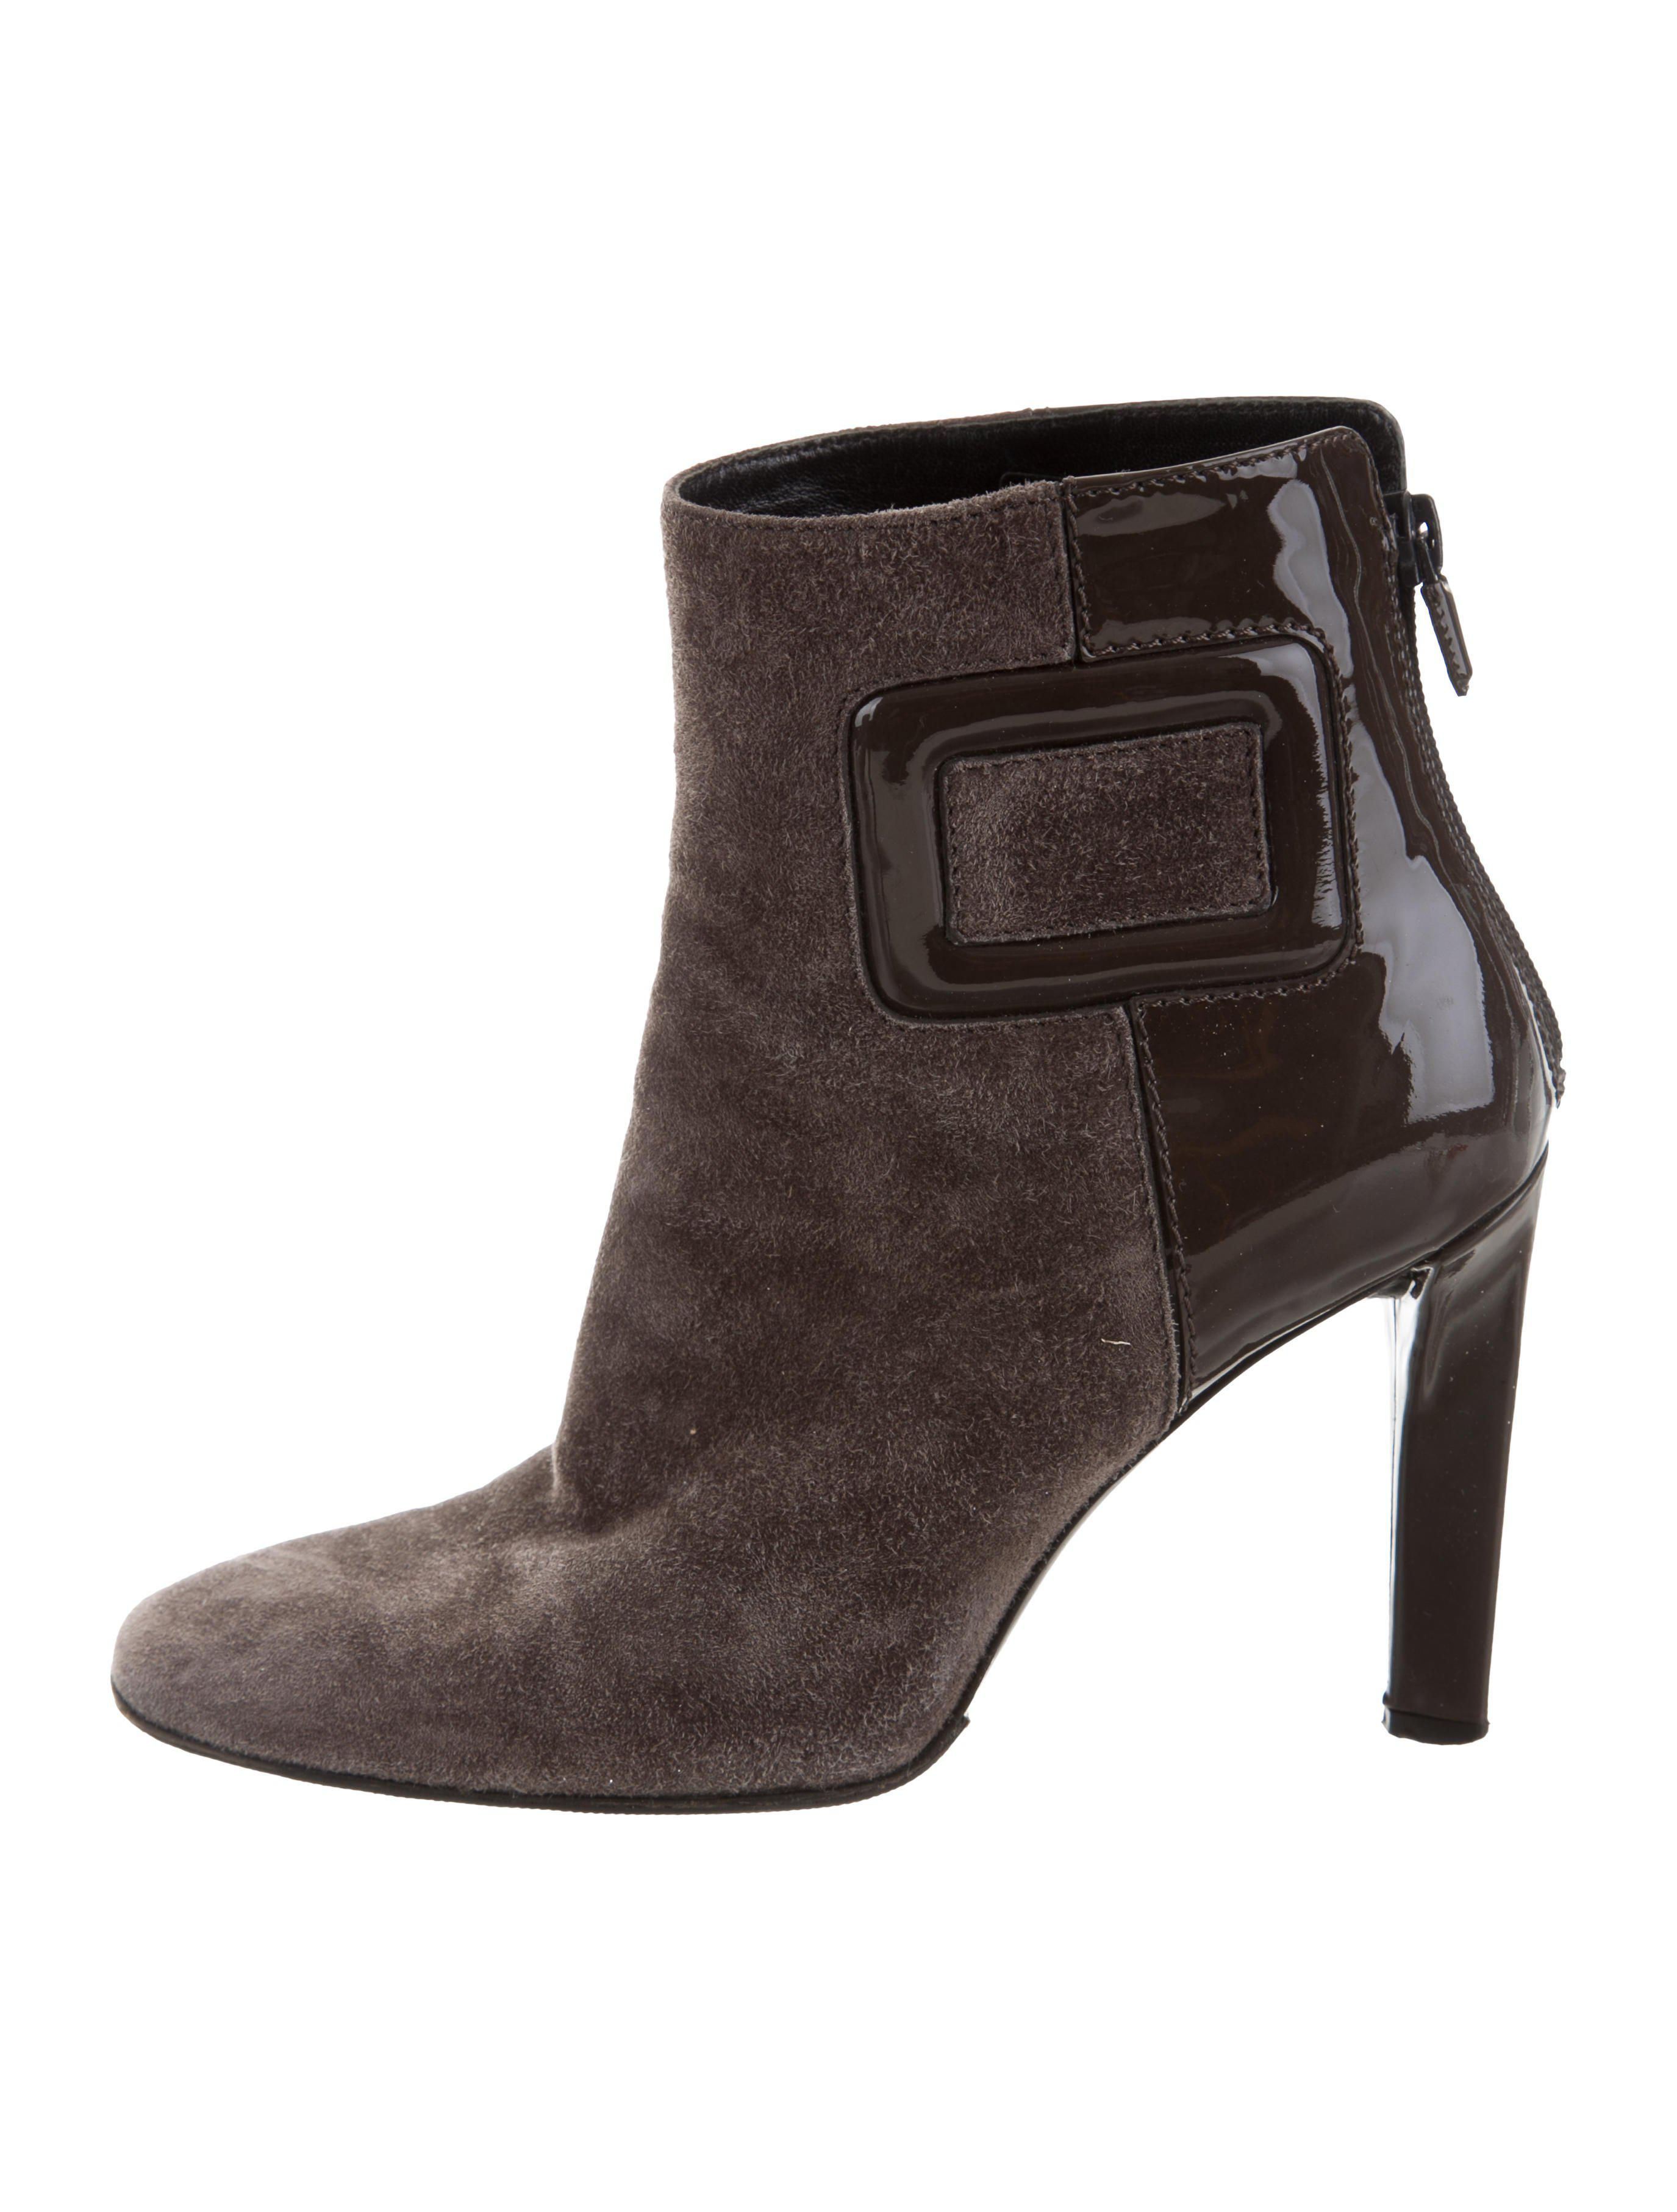 clearance low price fee shipping discount excellent Roger Vivier Suede Square-Toe Ankle Boots Xp75wy